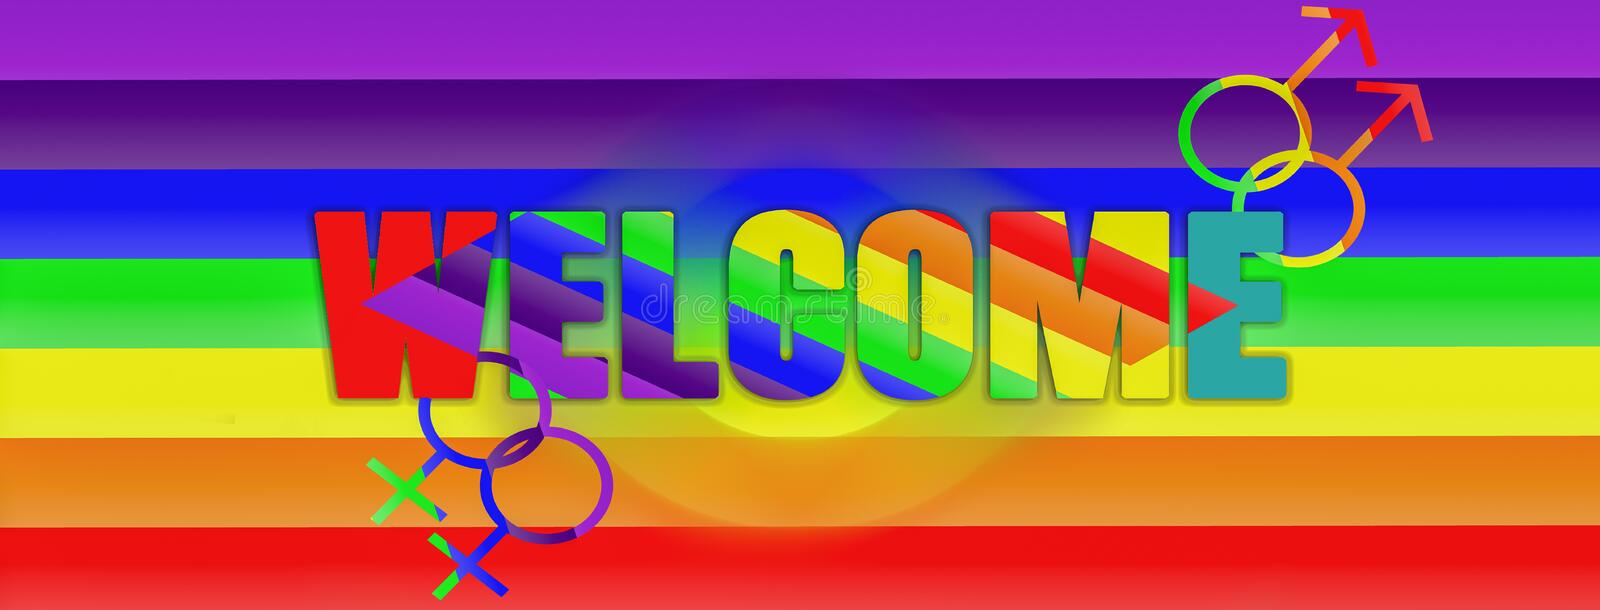 LGBT Concept Rainbow symbols of welcome, rights and equality of include lesbian, gay, bisexual and transgender groups, banner stock illustration